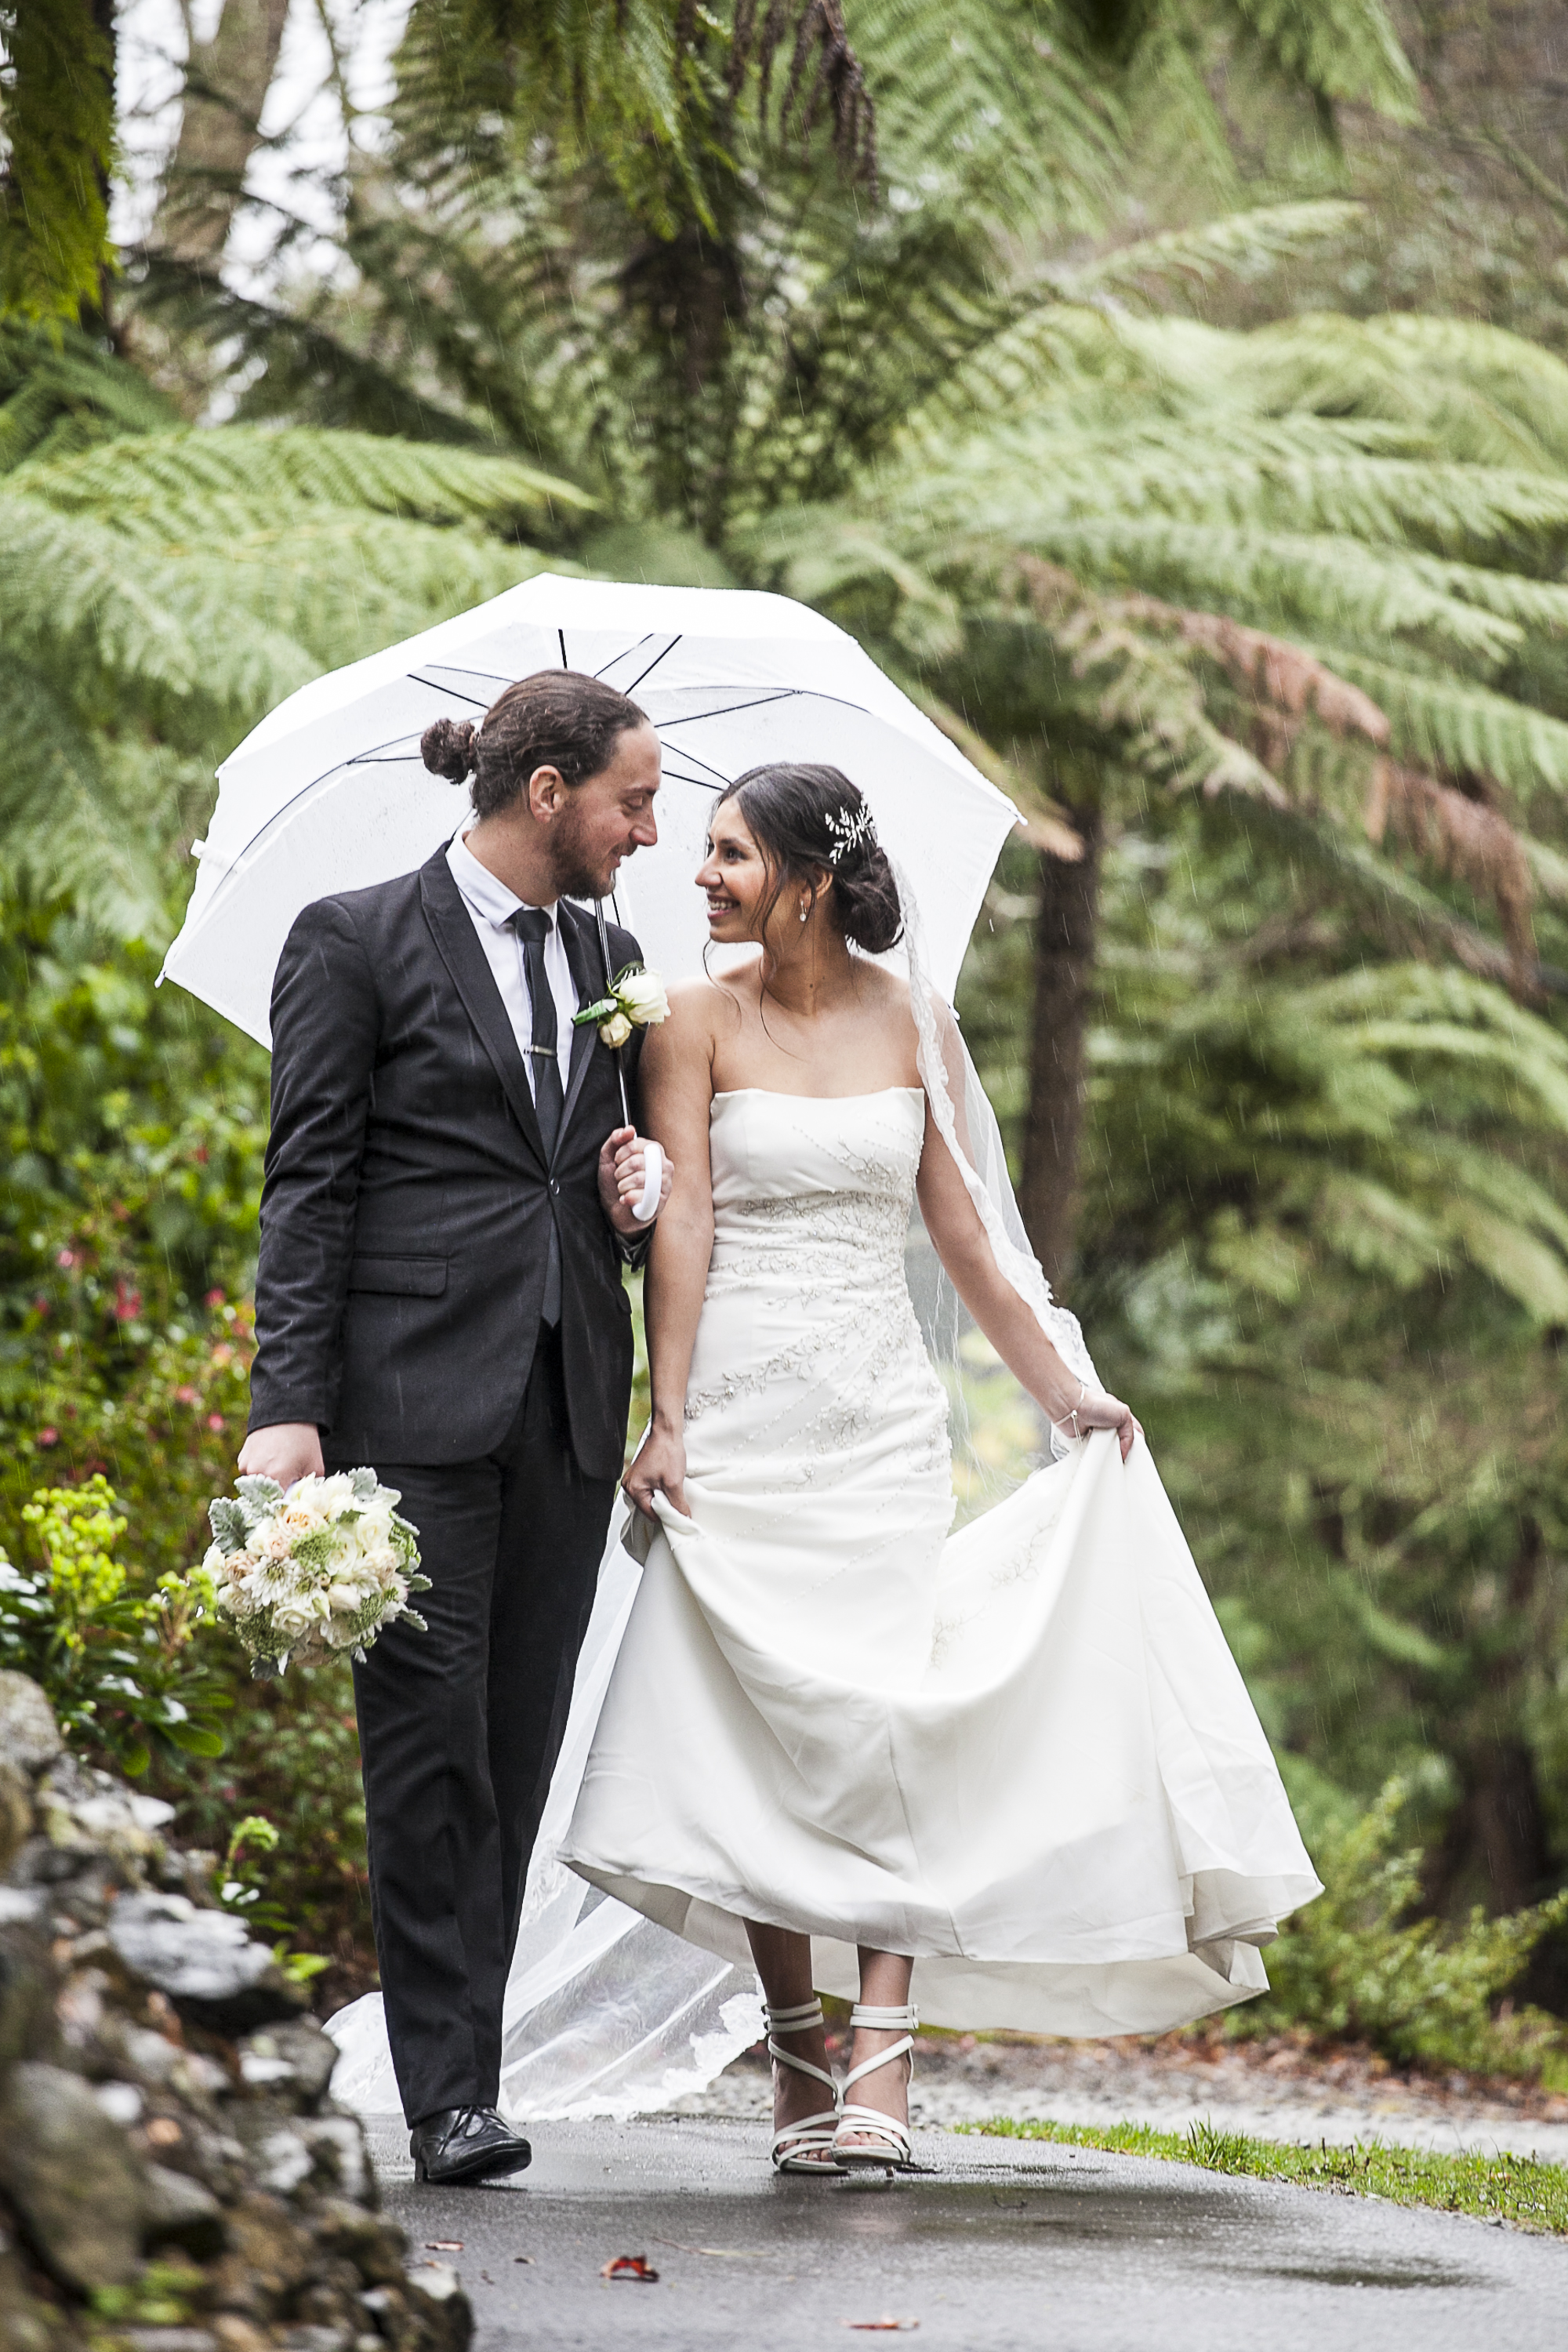 """Tip 1: Rain - One of the top questions I get asked is """"what do you do for our photos if it rains on the wedding day"""". Number one rule is to not think about it to much and especially don't let it stress you out. Unfortunately you cant change the weather so the best thing to do is to embrace it and enjoy the journey.Remember you have booked your dream venue and the best suppliers who have experienced these conditions many times before and are the best people to guide you through it. Be prepared with umbrellas, and why not make them cute lace ones which will look amazing in your photos!Did you know it is actually good luck to get married on a rainy day? No, someone didn't just make that up because it was raining and they were trying to cheer everyone up. You probably didn't know it is actually because you can't untie a wet knot <3Another tip for the day is to have a pair of back up shoes just for the photoshoot which are flats or even wedges to avoid sinking and walking in puddles with your beautiful bridal shoes. You could even have some fun and put on a pair of gum boots and really embrace the day!Lastly, a great photographer will always find beautiful places inside to take photos between the rain showers. It might be the piano in the corner of the dining area that you didn't see as more than a musical instrument. Or in the back up chapel which has stained glass windows that create amazing light effects. You may not see all of these things when you visited the venue because you were captivated by the stunning gardens for your photos, but remember you have paid good money for your photographer and these are the times they are most creative."""